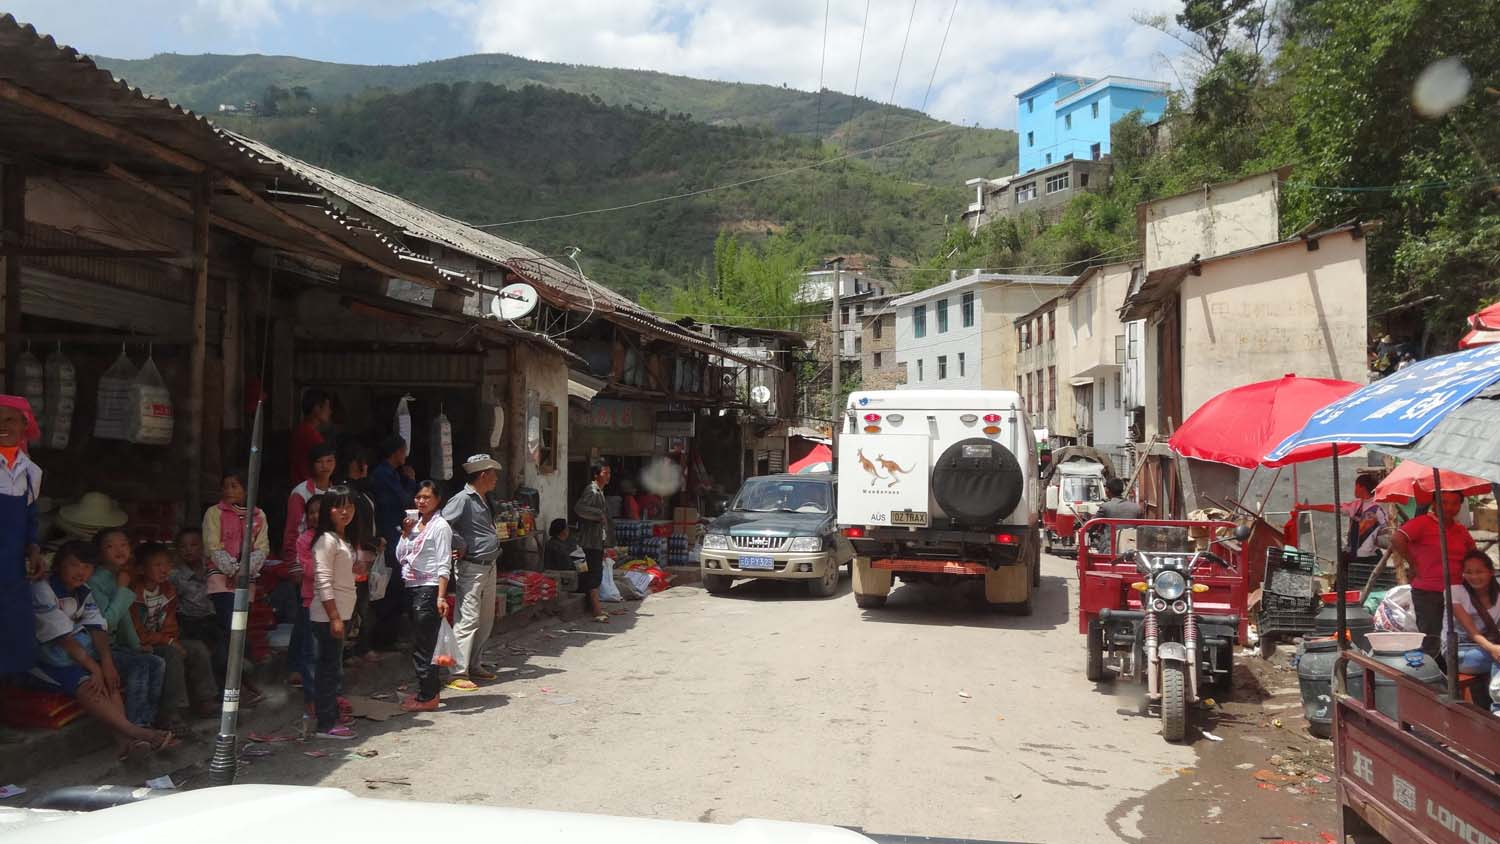 big trucks, small villages and narrow roads means slow progress